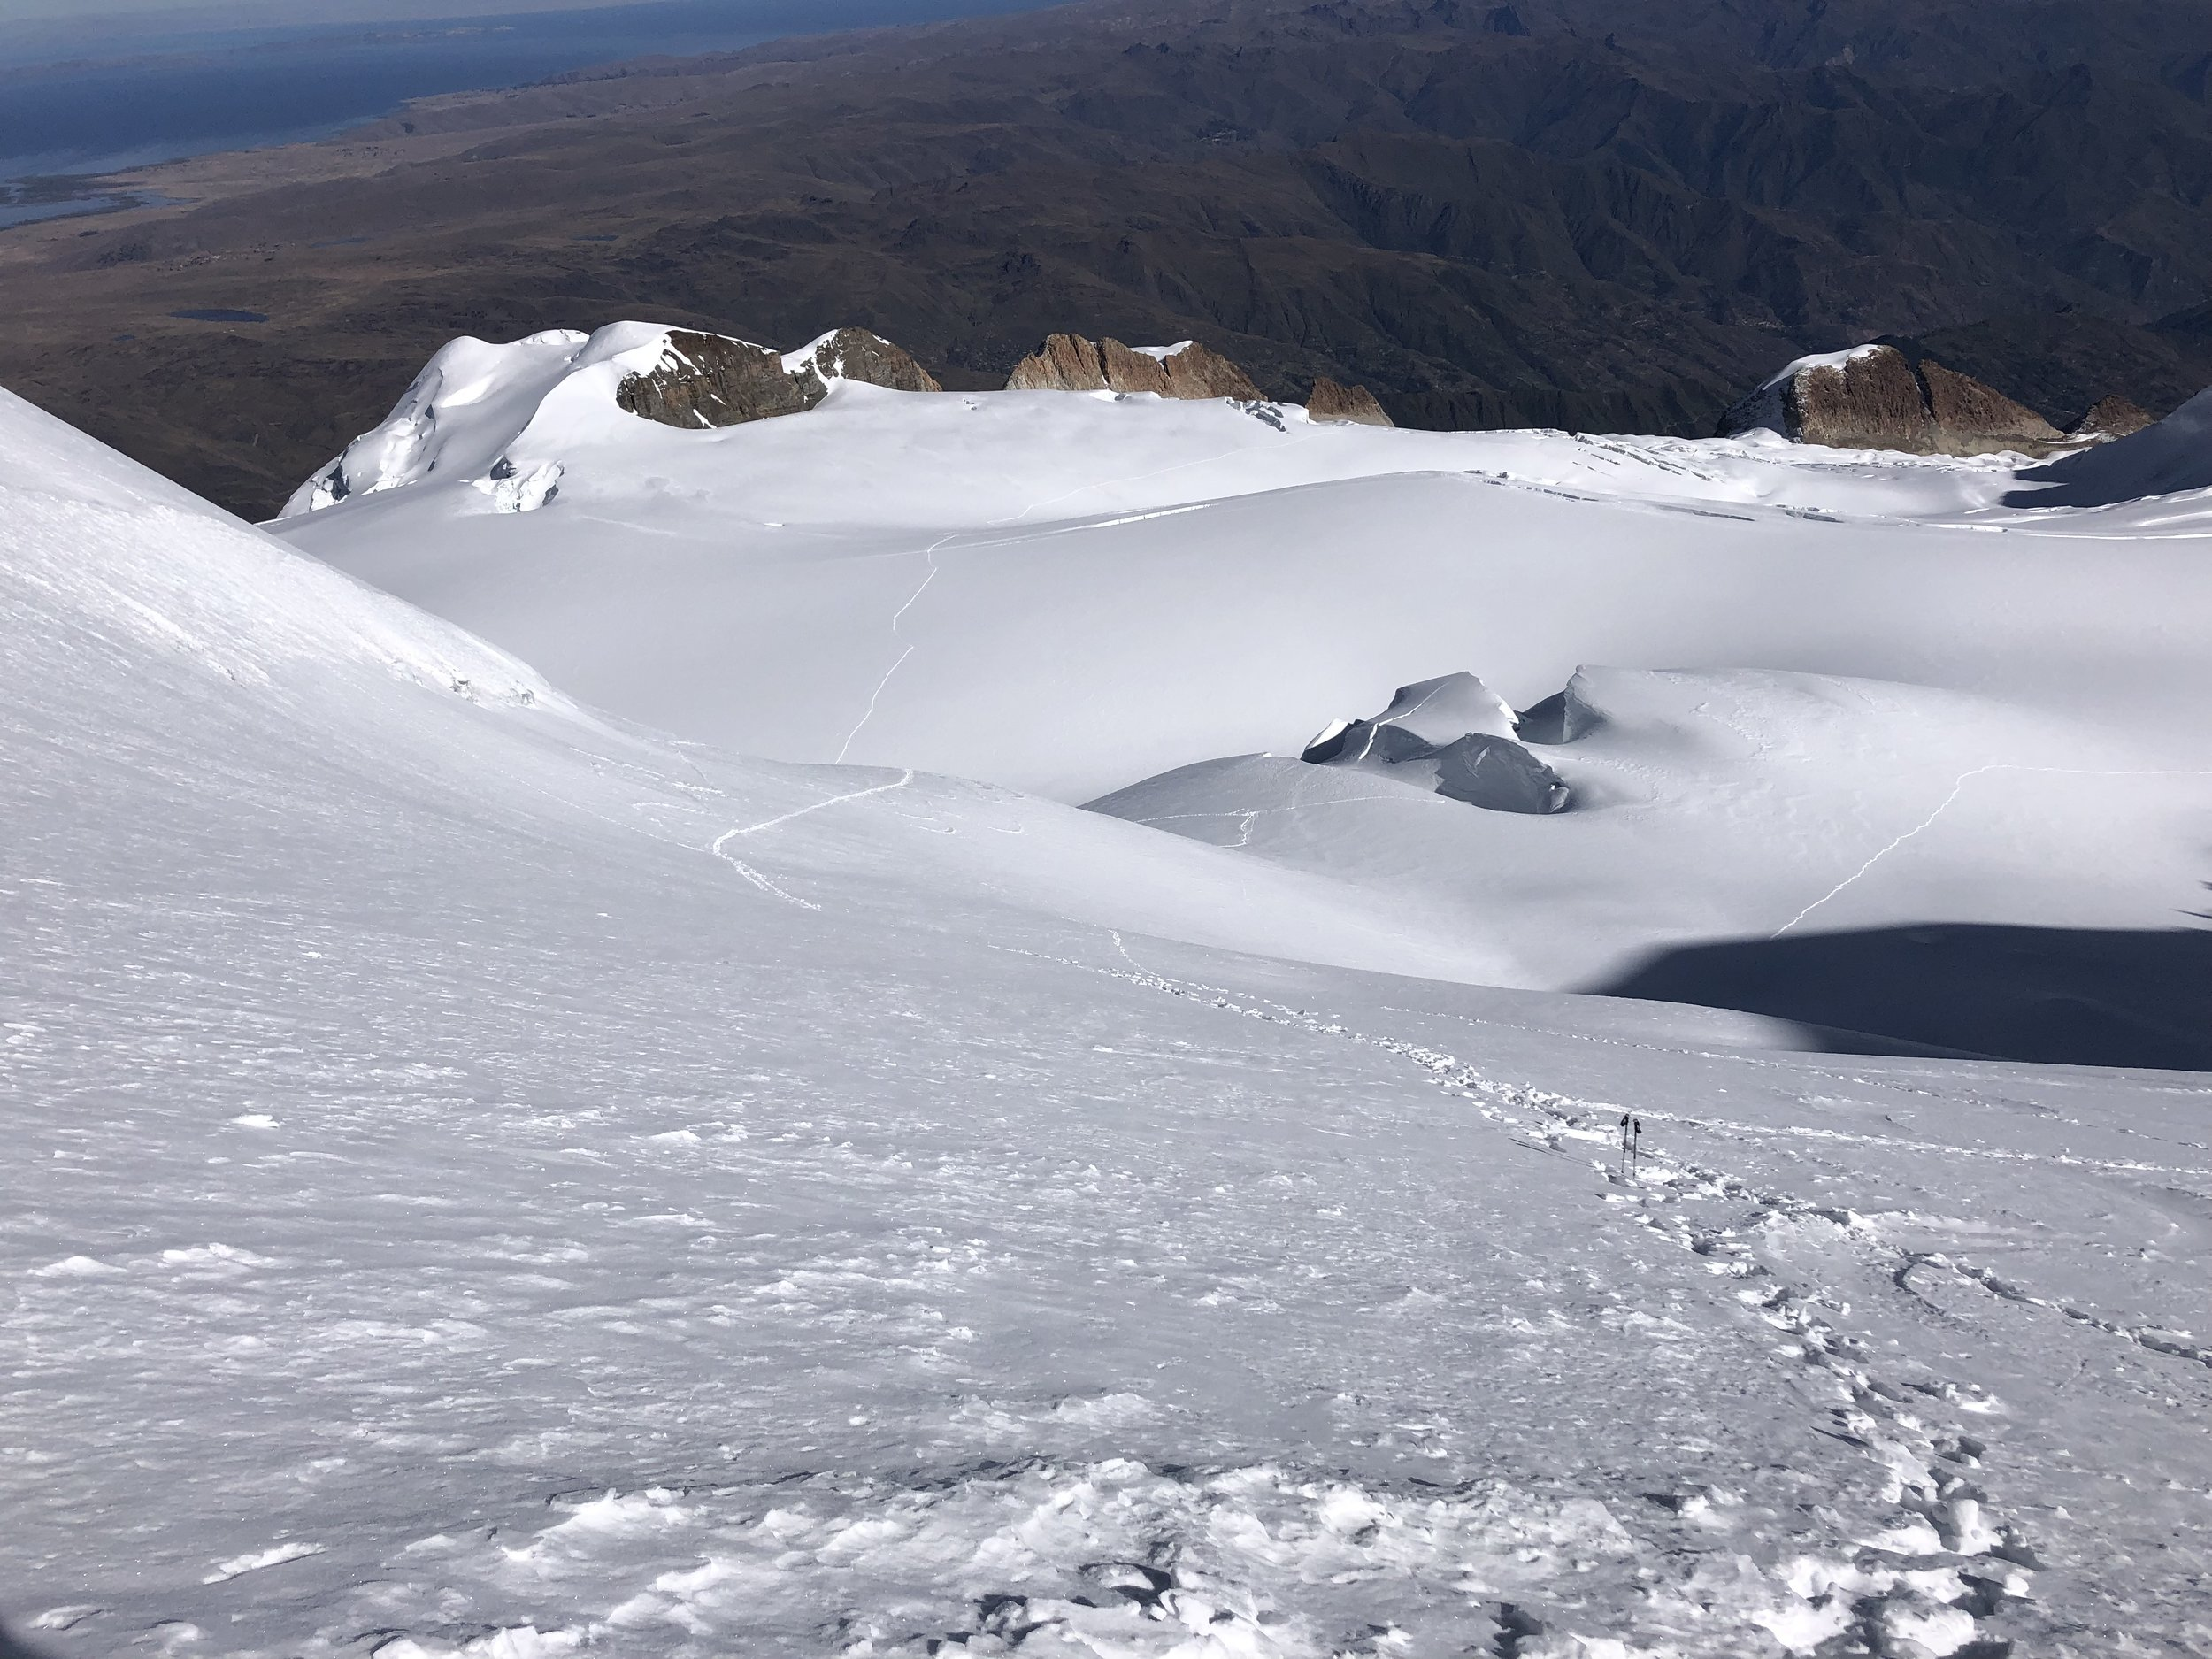 Looking down to our route. The camp is well below!